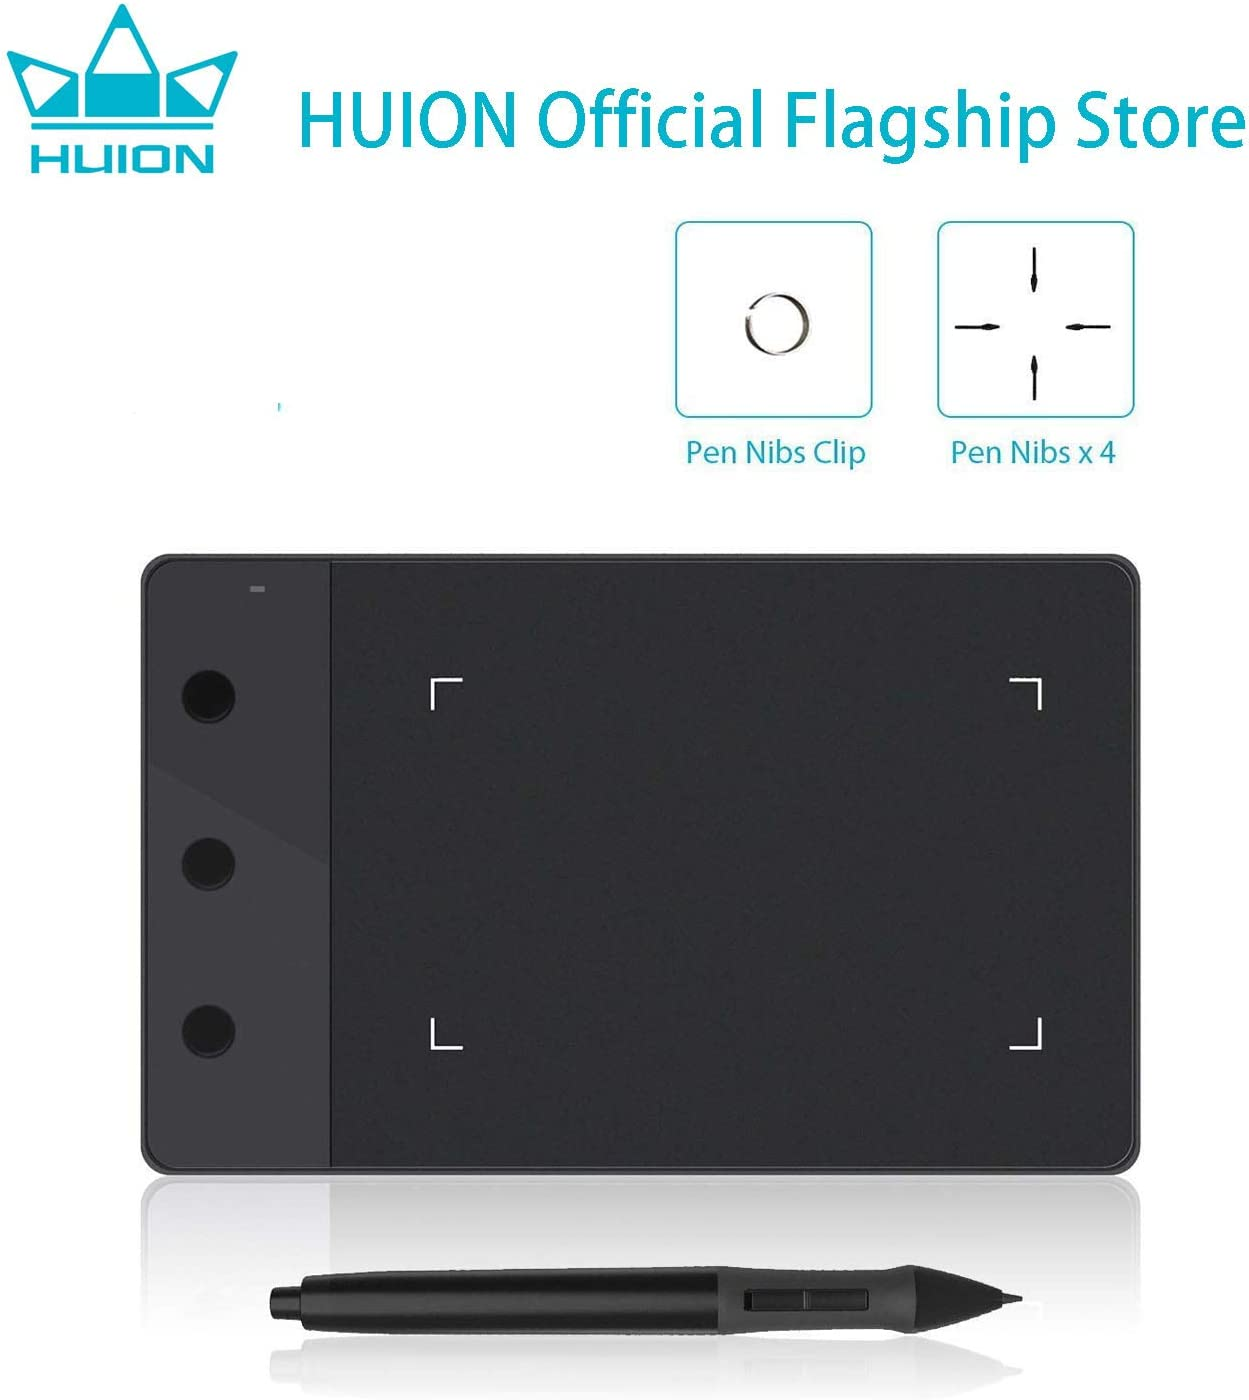 Amazon Com Huion H420 Osu Graphics Drawing Tablet Signature Pad With Digital Stylus And 3 Express Keys Computers Accessories